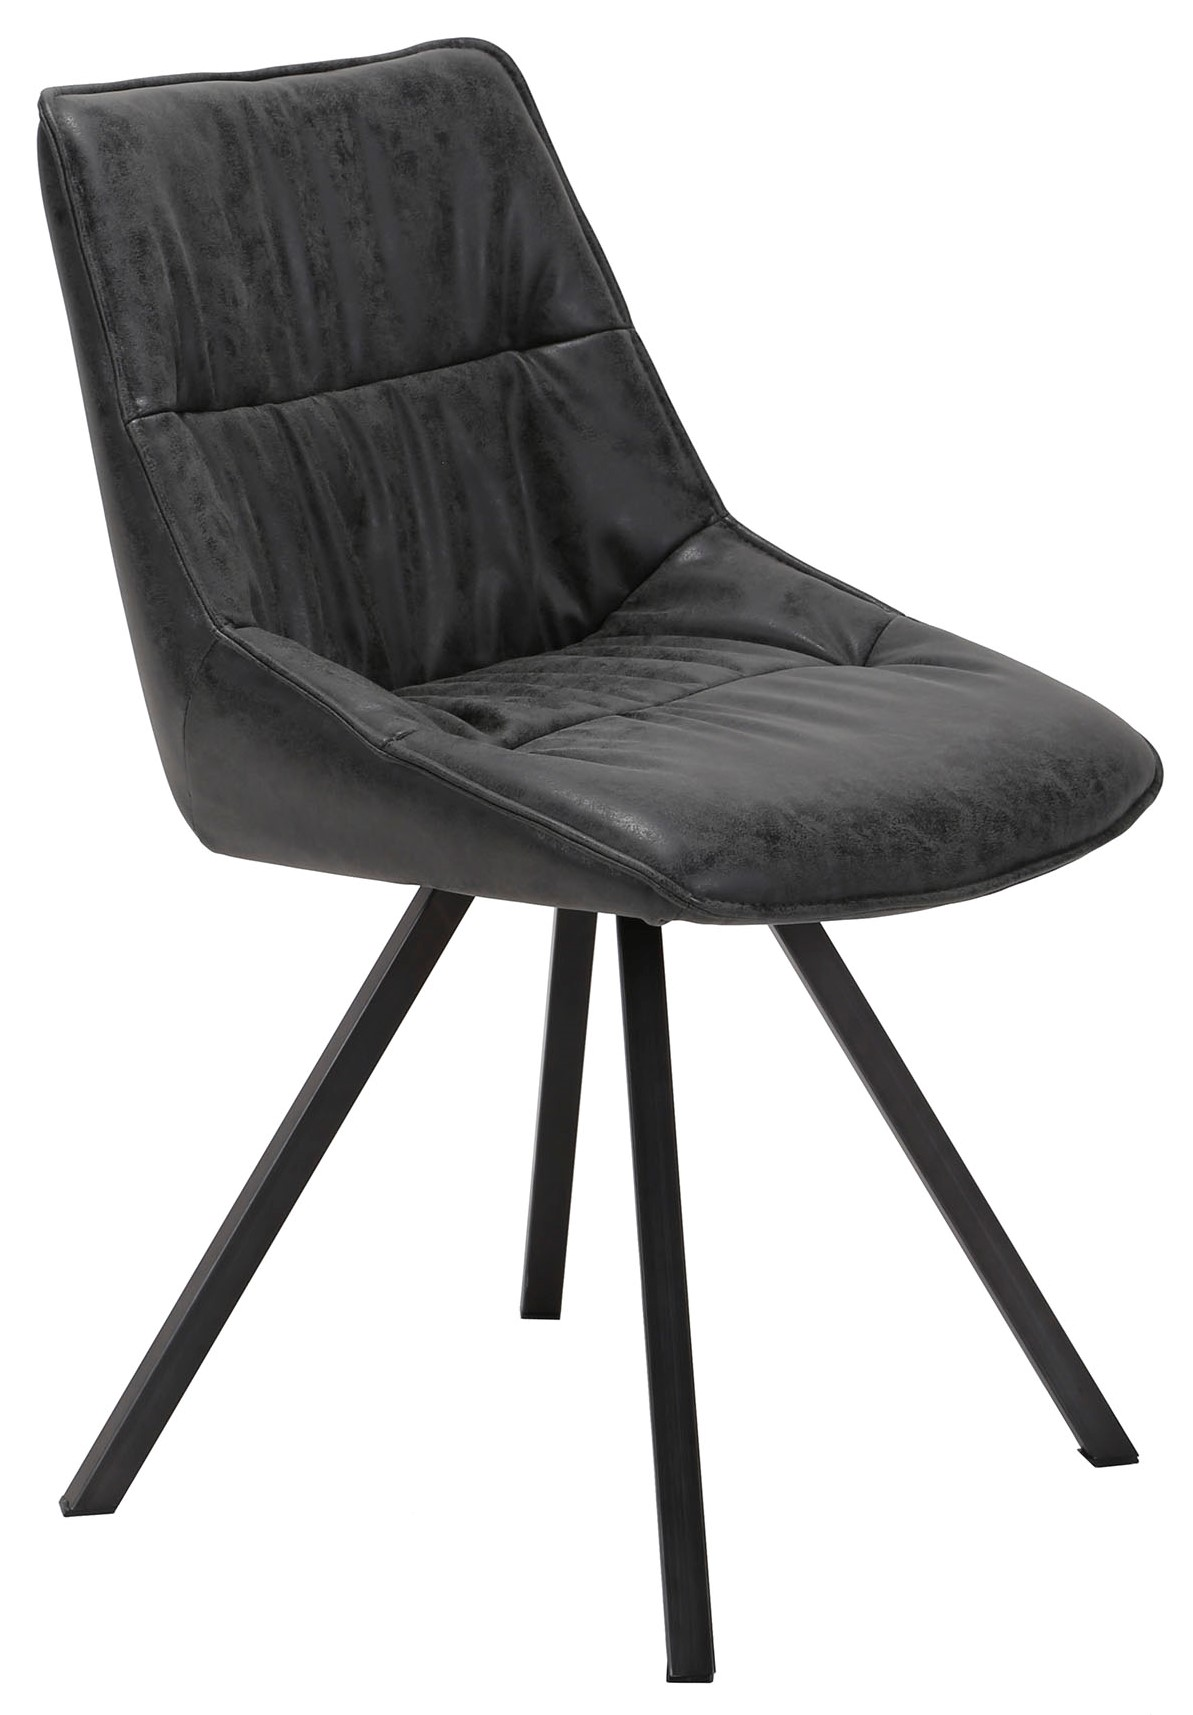 chaise scandinave gris fonce tribeca